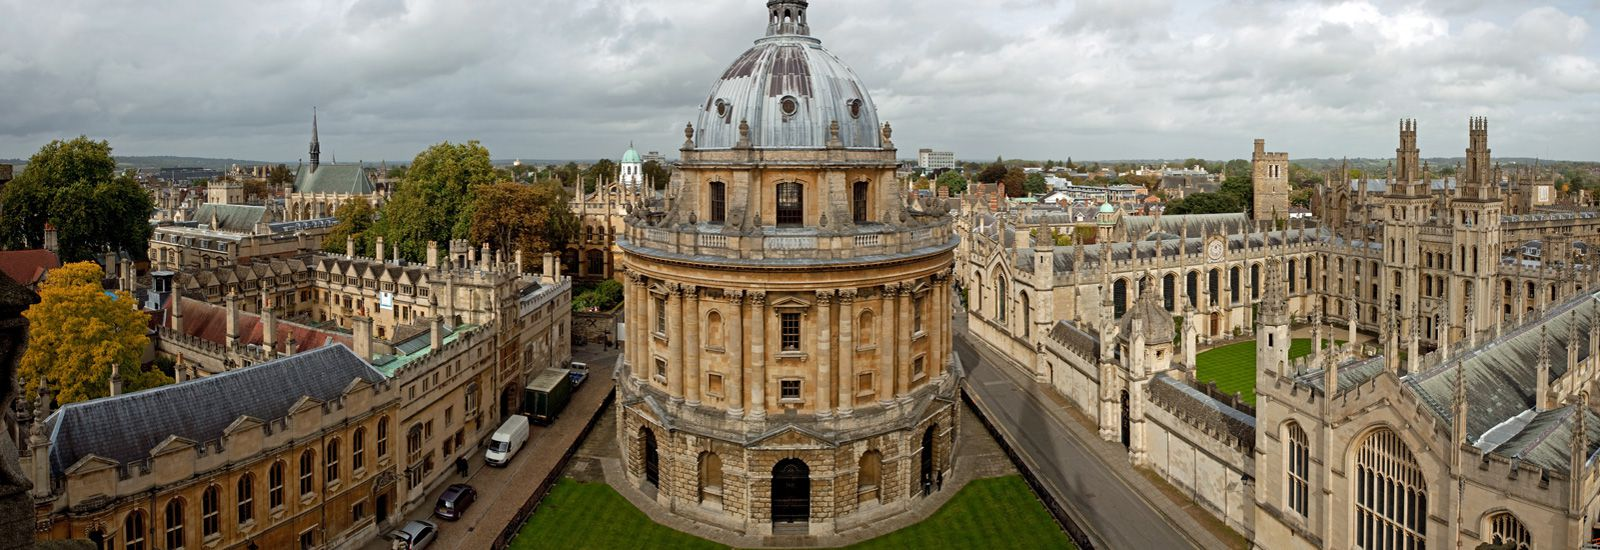 Oxford University. Foto: site oficial Oxford